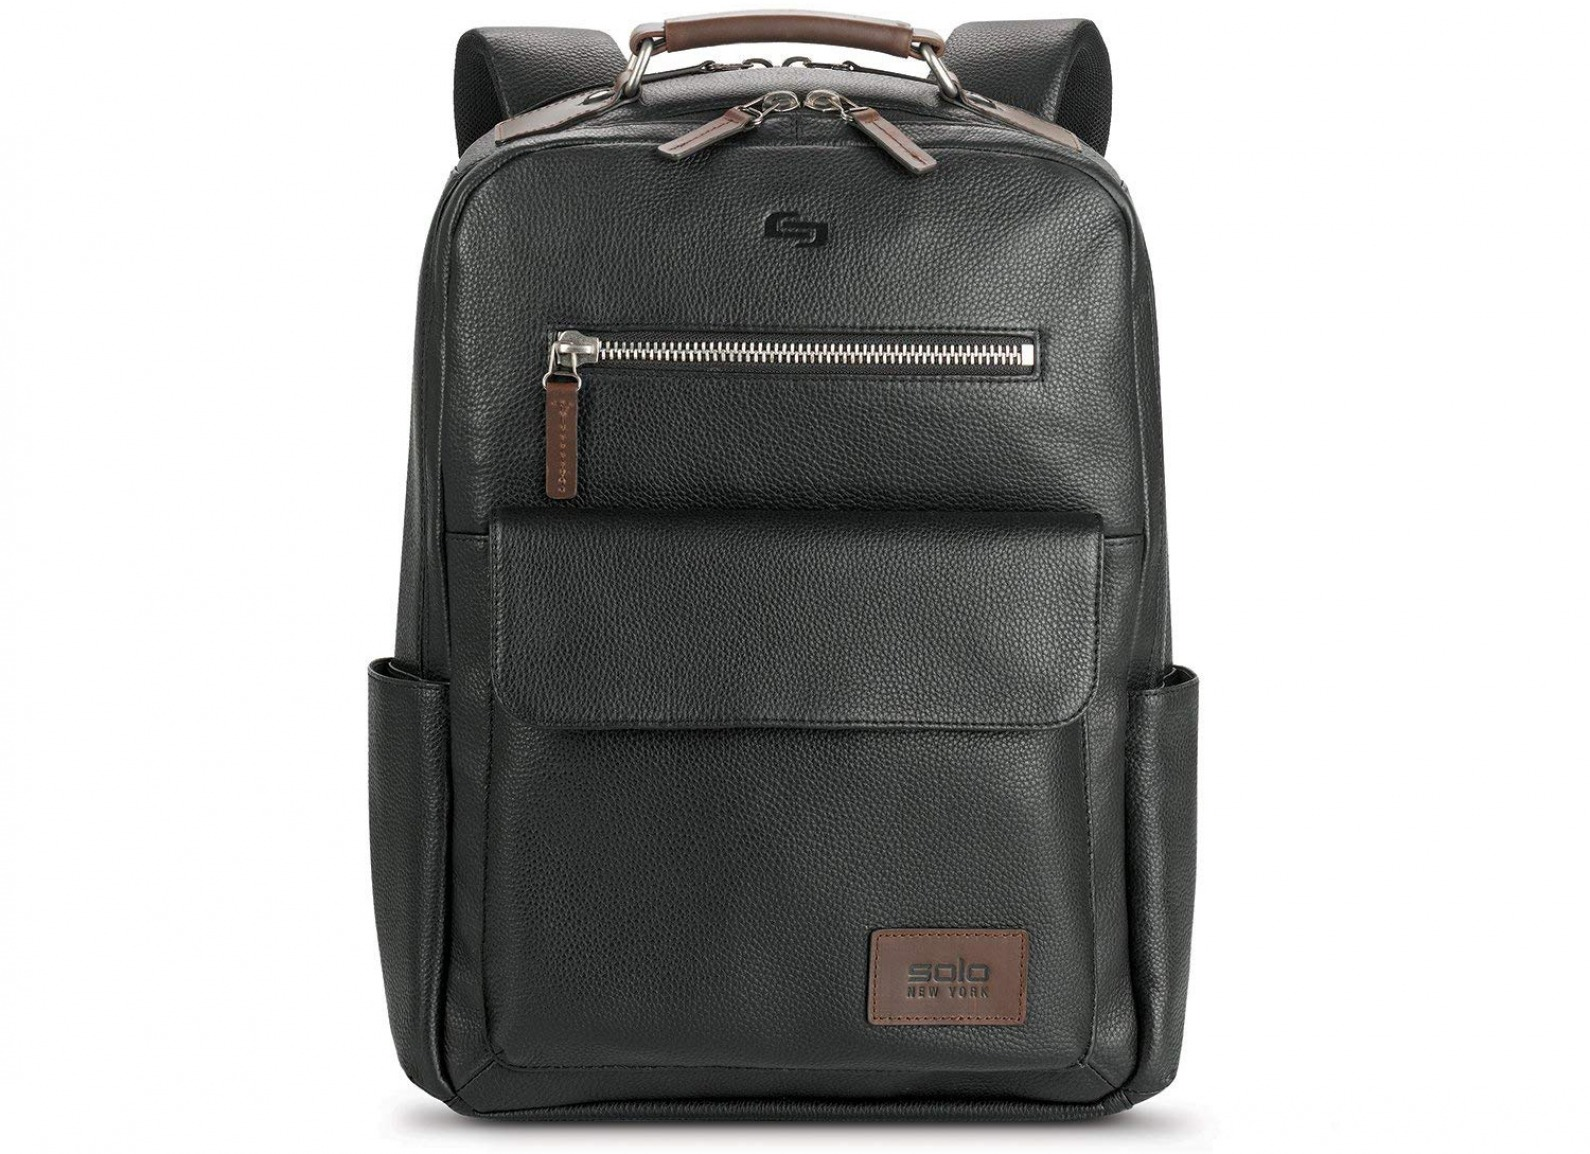 b7b04e40f02 Review: This Leather Backpack from Solo Is Perfect for Work or ...